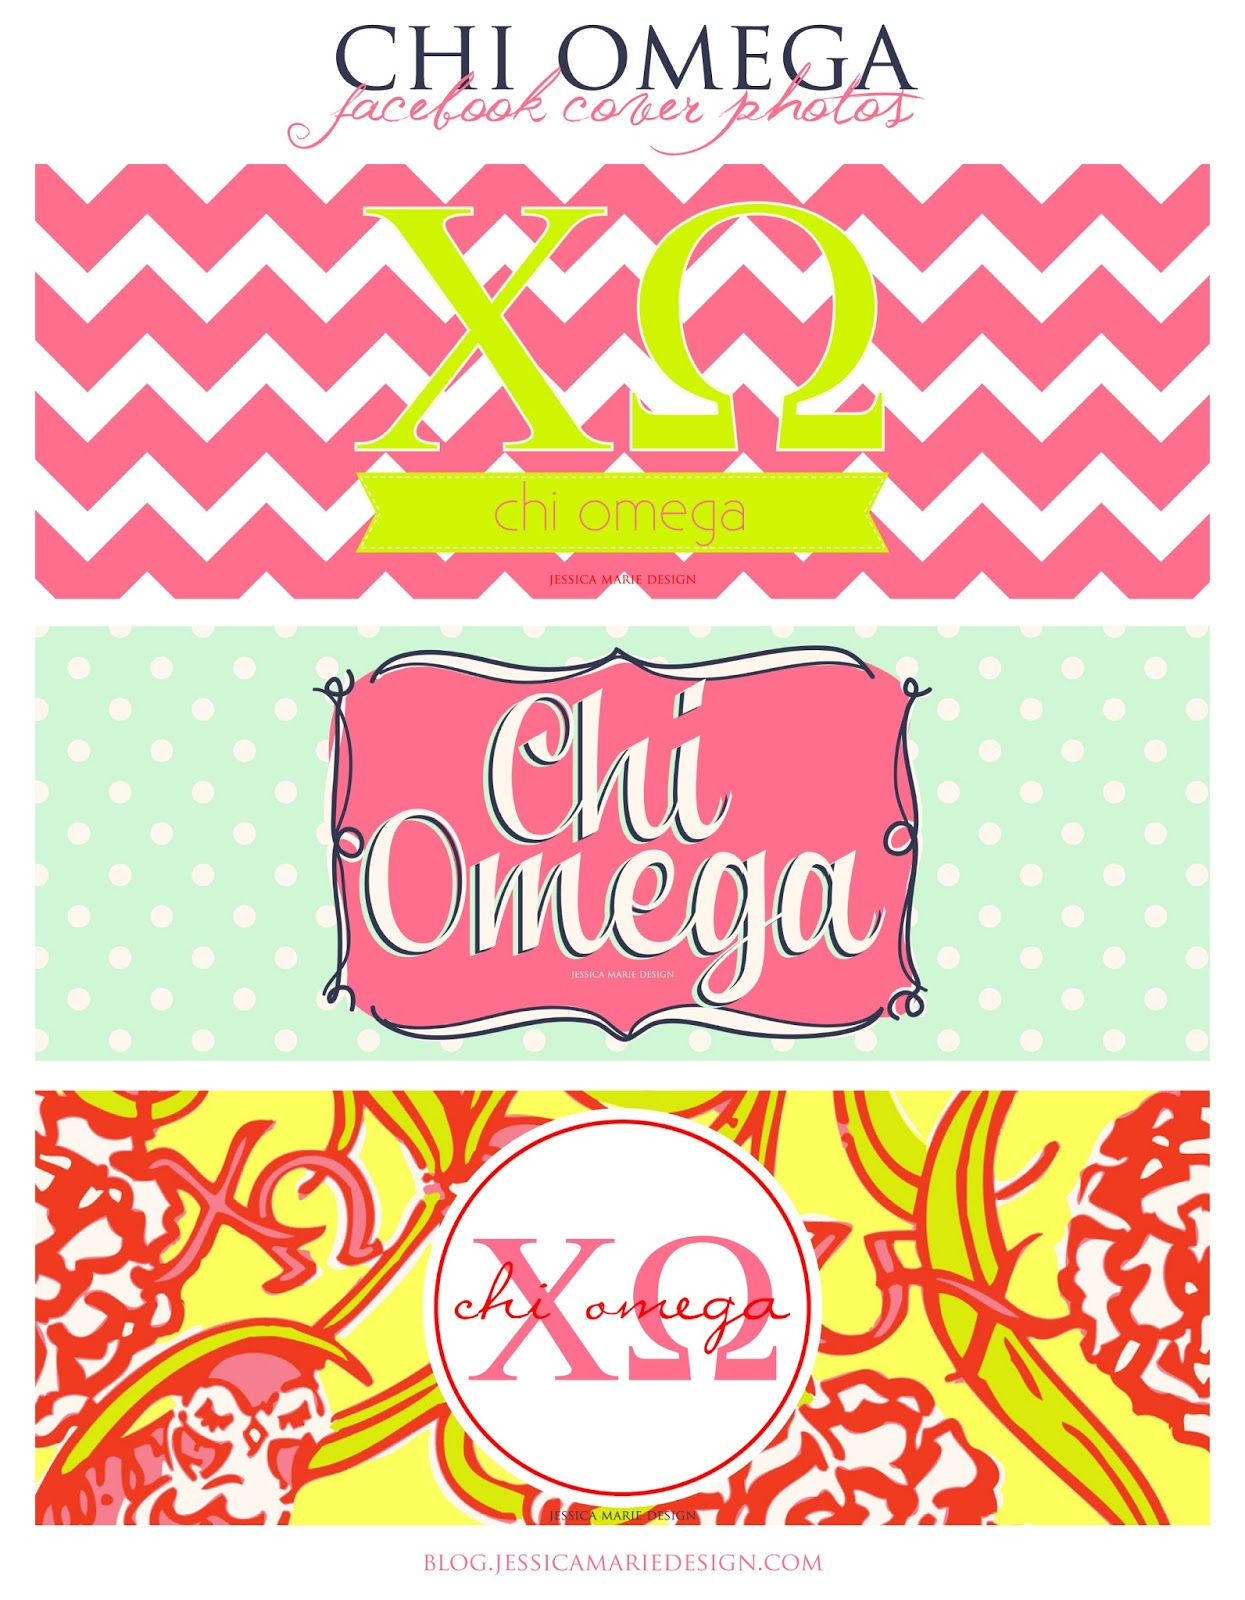 Chi Omega Accessories Outfit Facebook Cover Photos 1245x1600